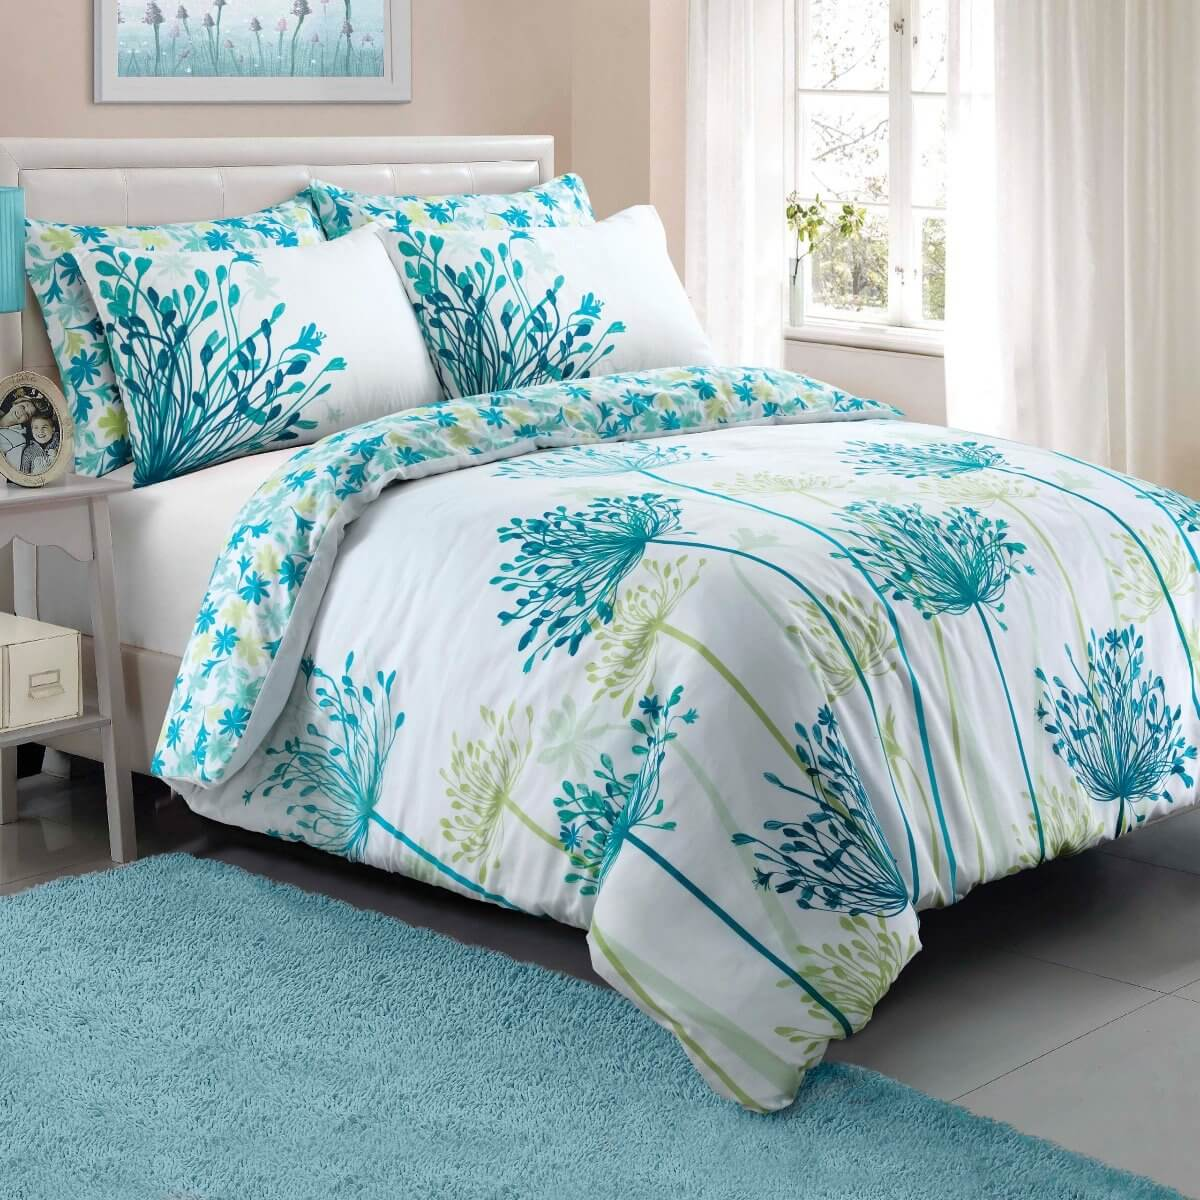 Meadow Teal Bedding - Reversible Duvet Cover and Pillowcase Set